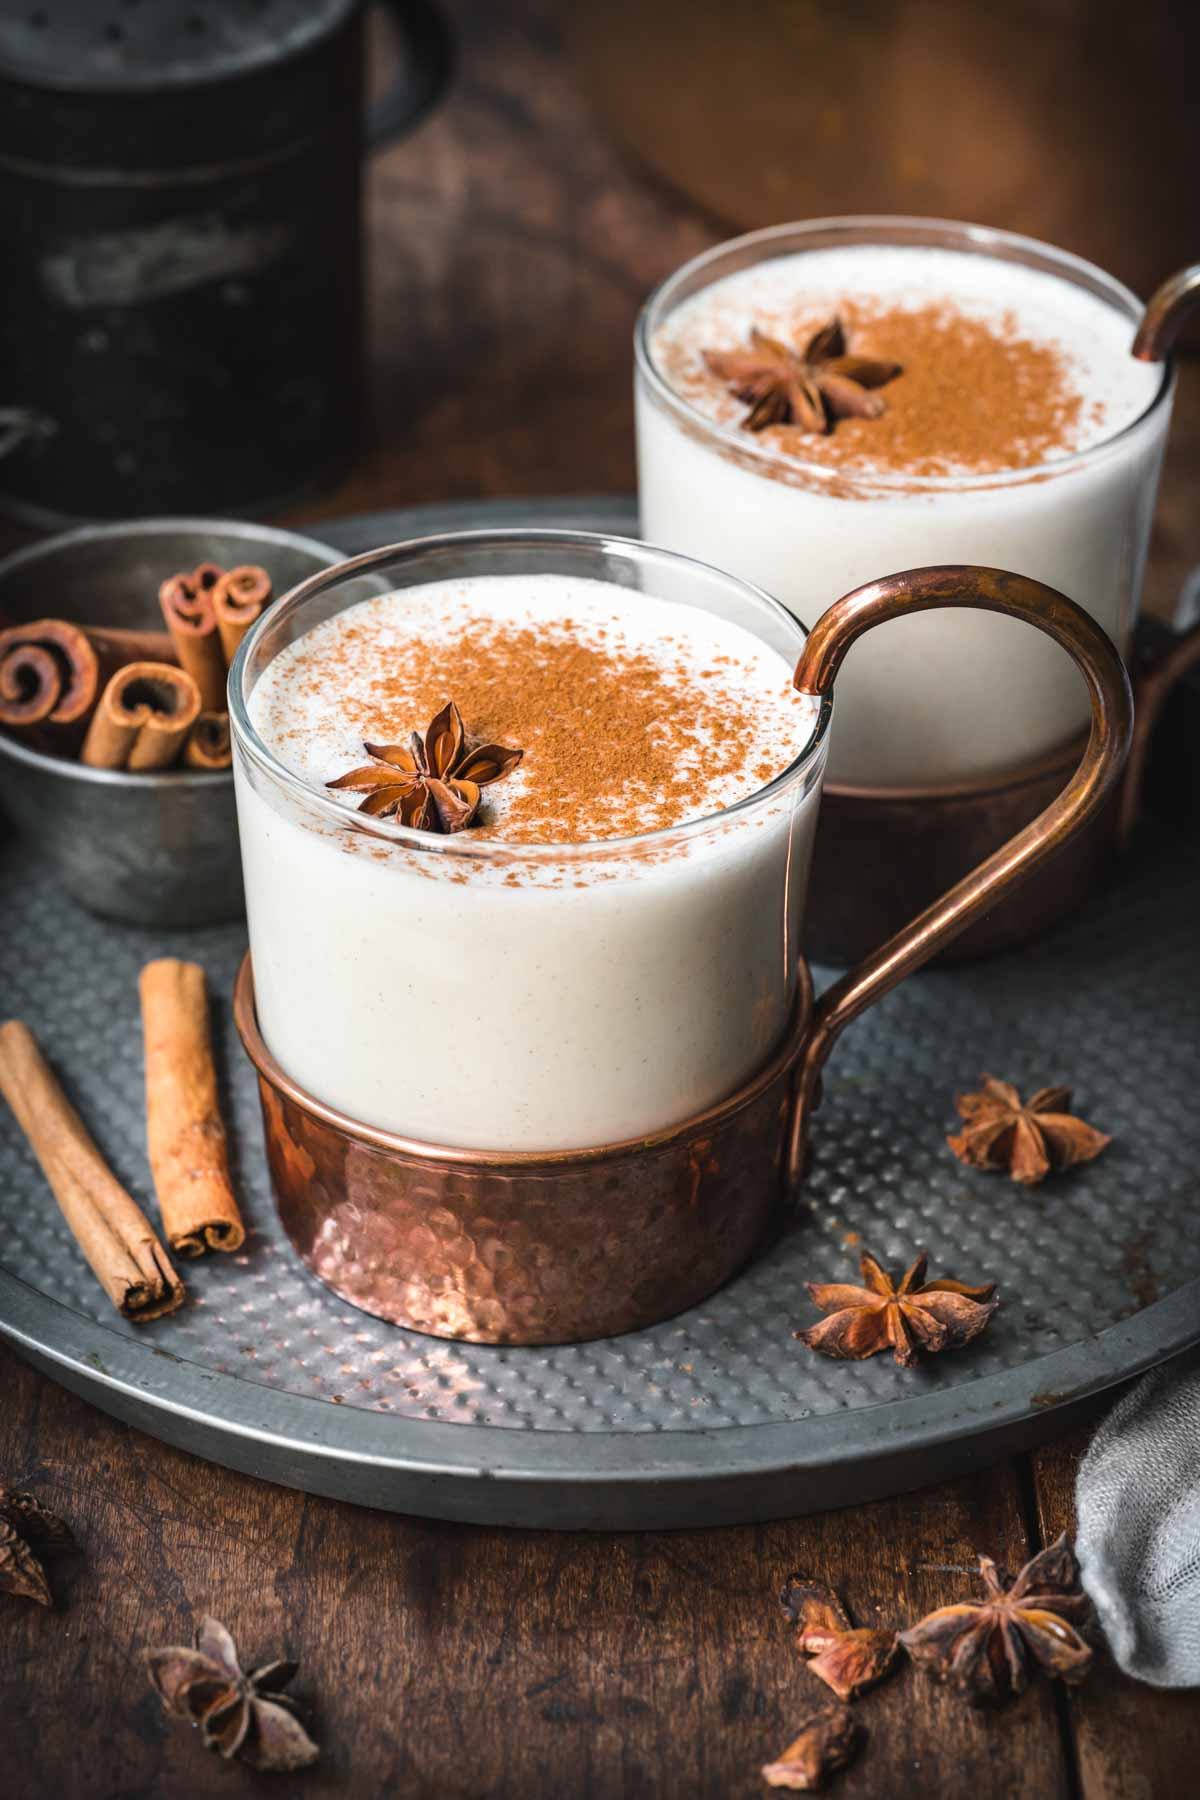 Close up of vegan eggnog in a mug with cinnamon on top and star anise.